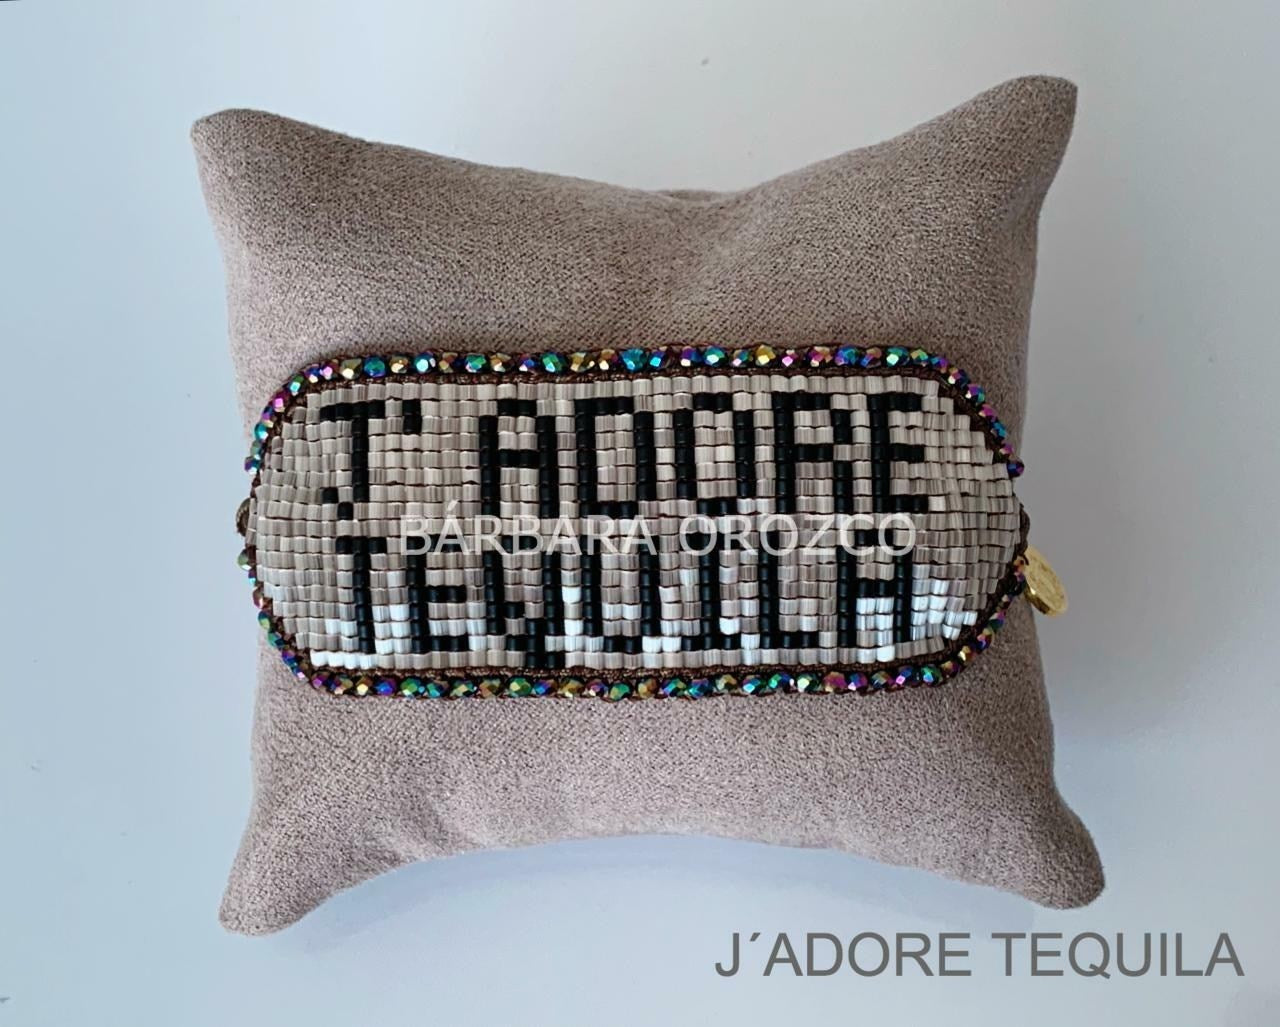 J´ADORE TEQUILA